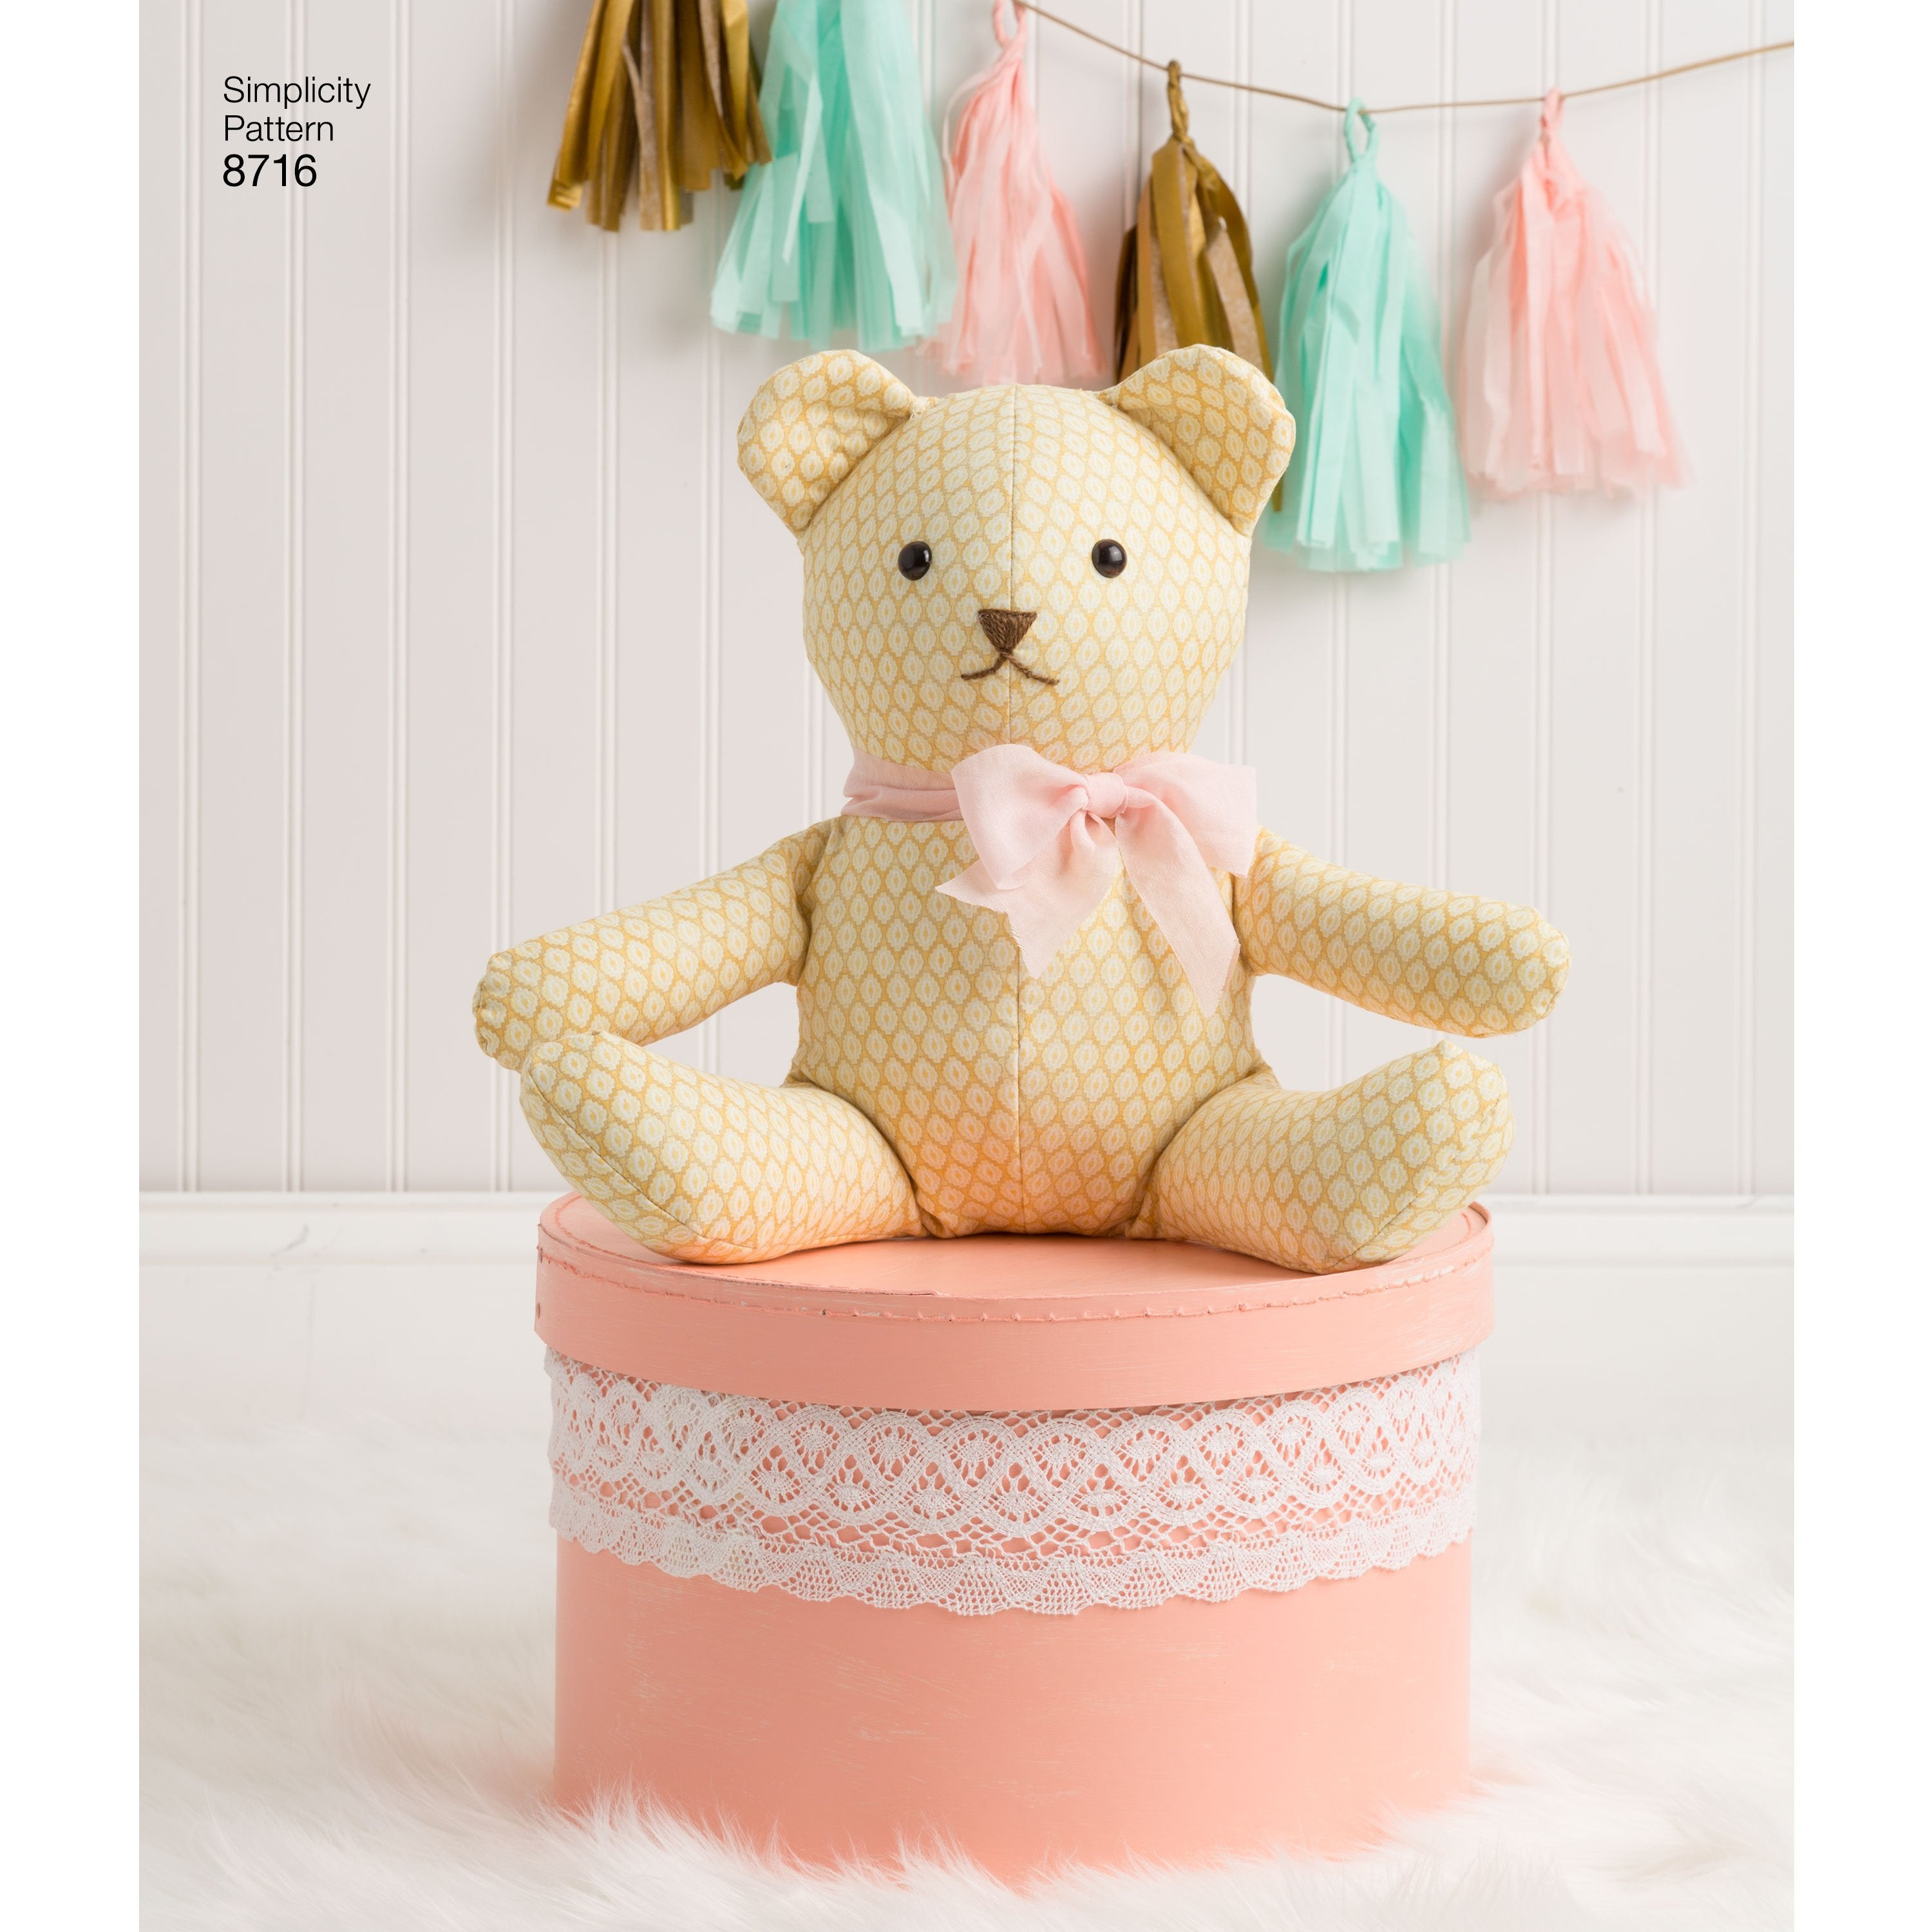 S8716 Stuffed Toy Animals sewing pattern